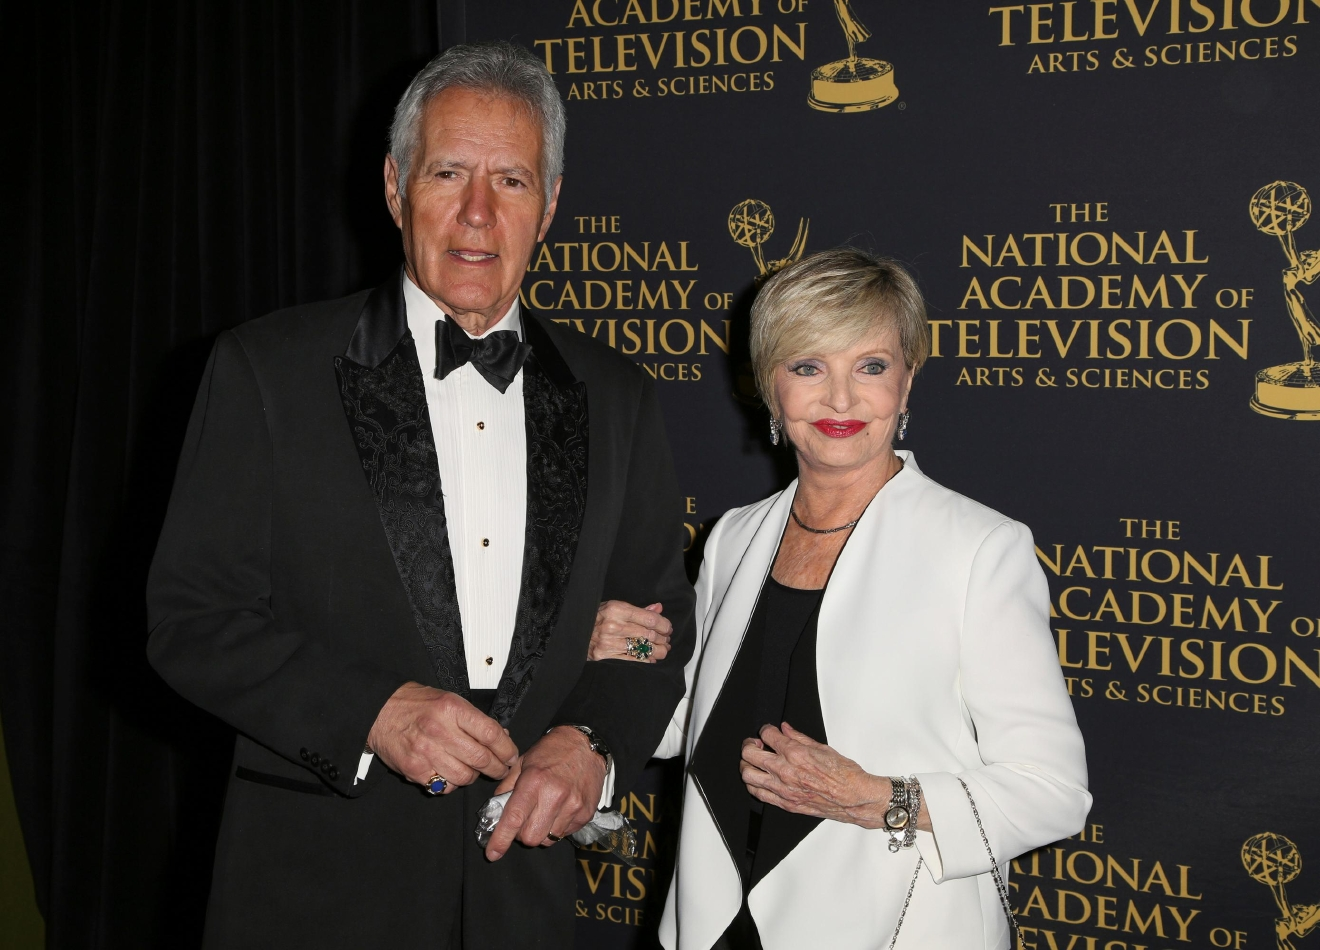 "FILE - In this April 24, 2015 file photo, Alex Trebek, left, and Florence Henderson arrive at the 2015 Daytime Creative Arts Emmy Awards at The Universal Hilton in Universal City, Calif. Henderson, the wholesome actress who went from Broadway star to television icon when she became Carol Brady, the ever-cheerful mom residing over ""The Brady Bunch,"" has died at age 82. She died surrounded by family and friends, her manager, Kayla Pressman, said in a statement late Thursday, Nov. 24, 2016. (Photo by Rich Fury/Invision/AP, File)"